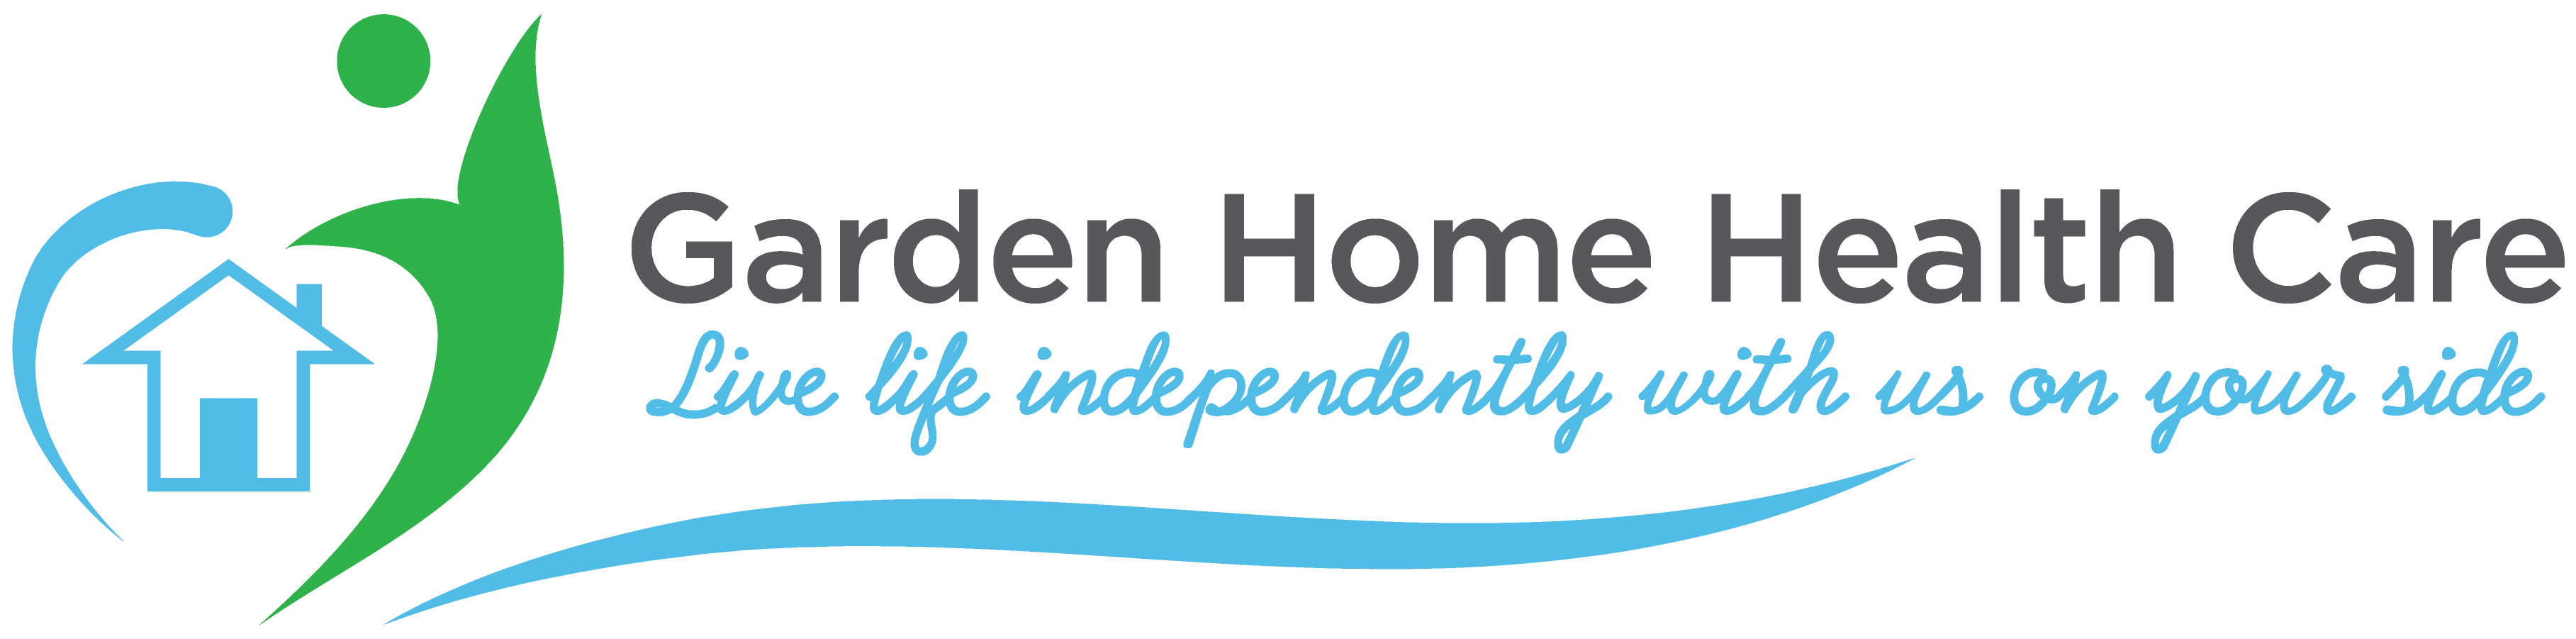 Garden Home Health Care